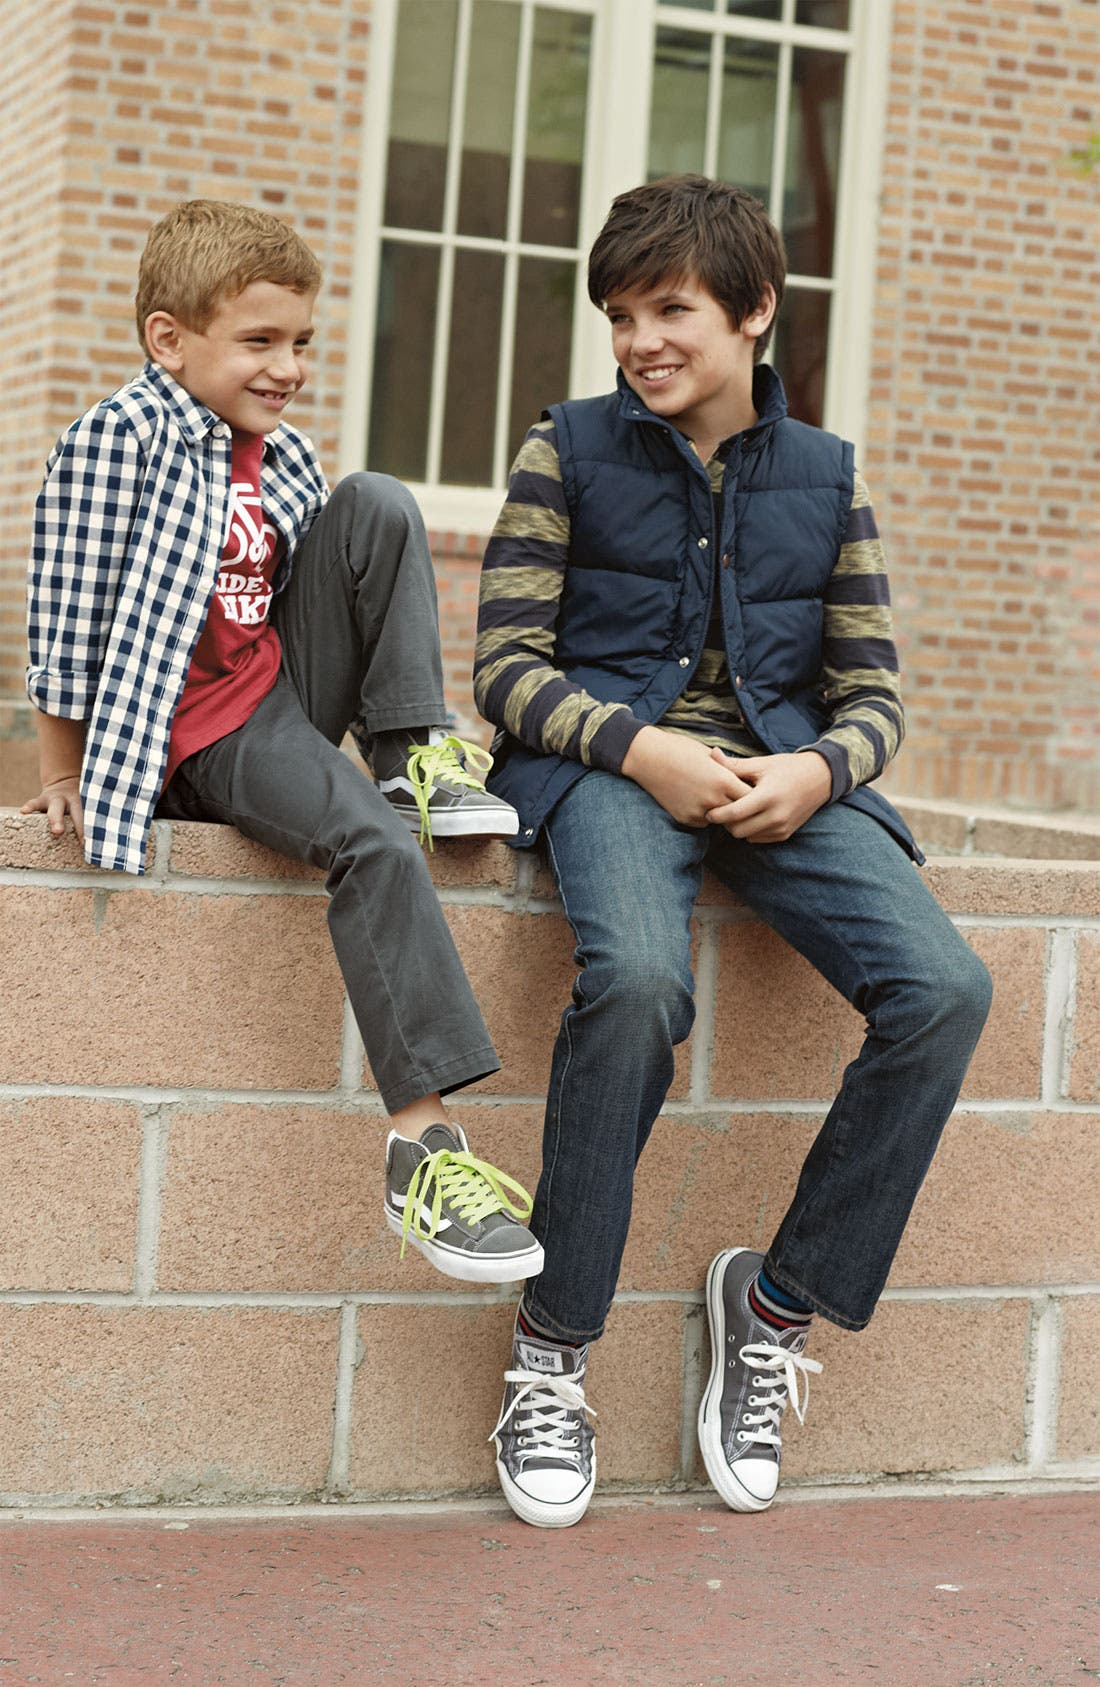 Alternate Image 1 Selected - Tucker + Tate T-Shirt, Woven Shirt & Chinos (Little Boys)